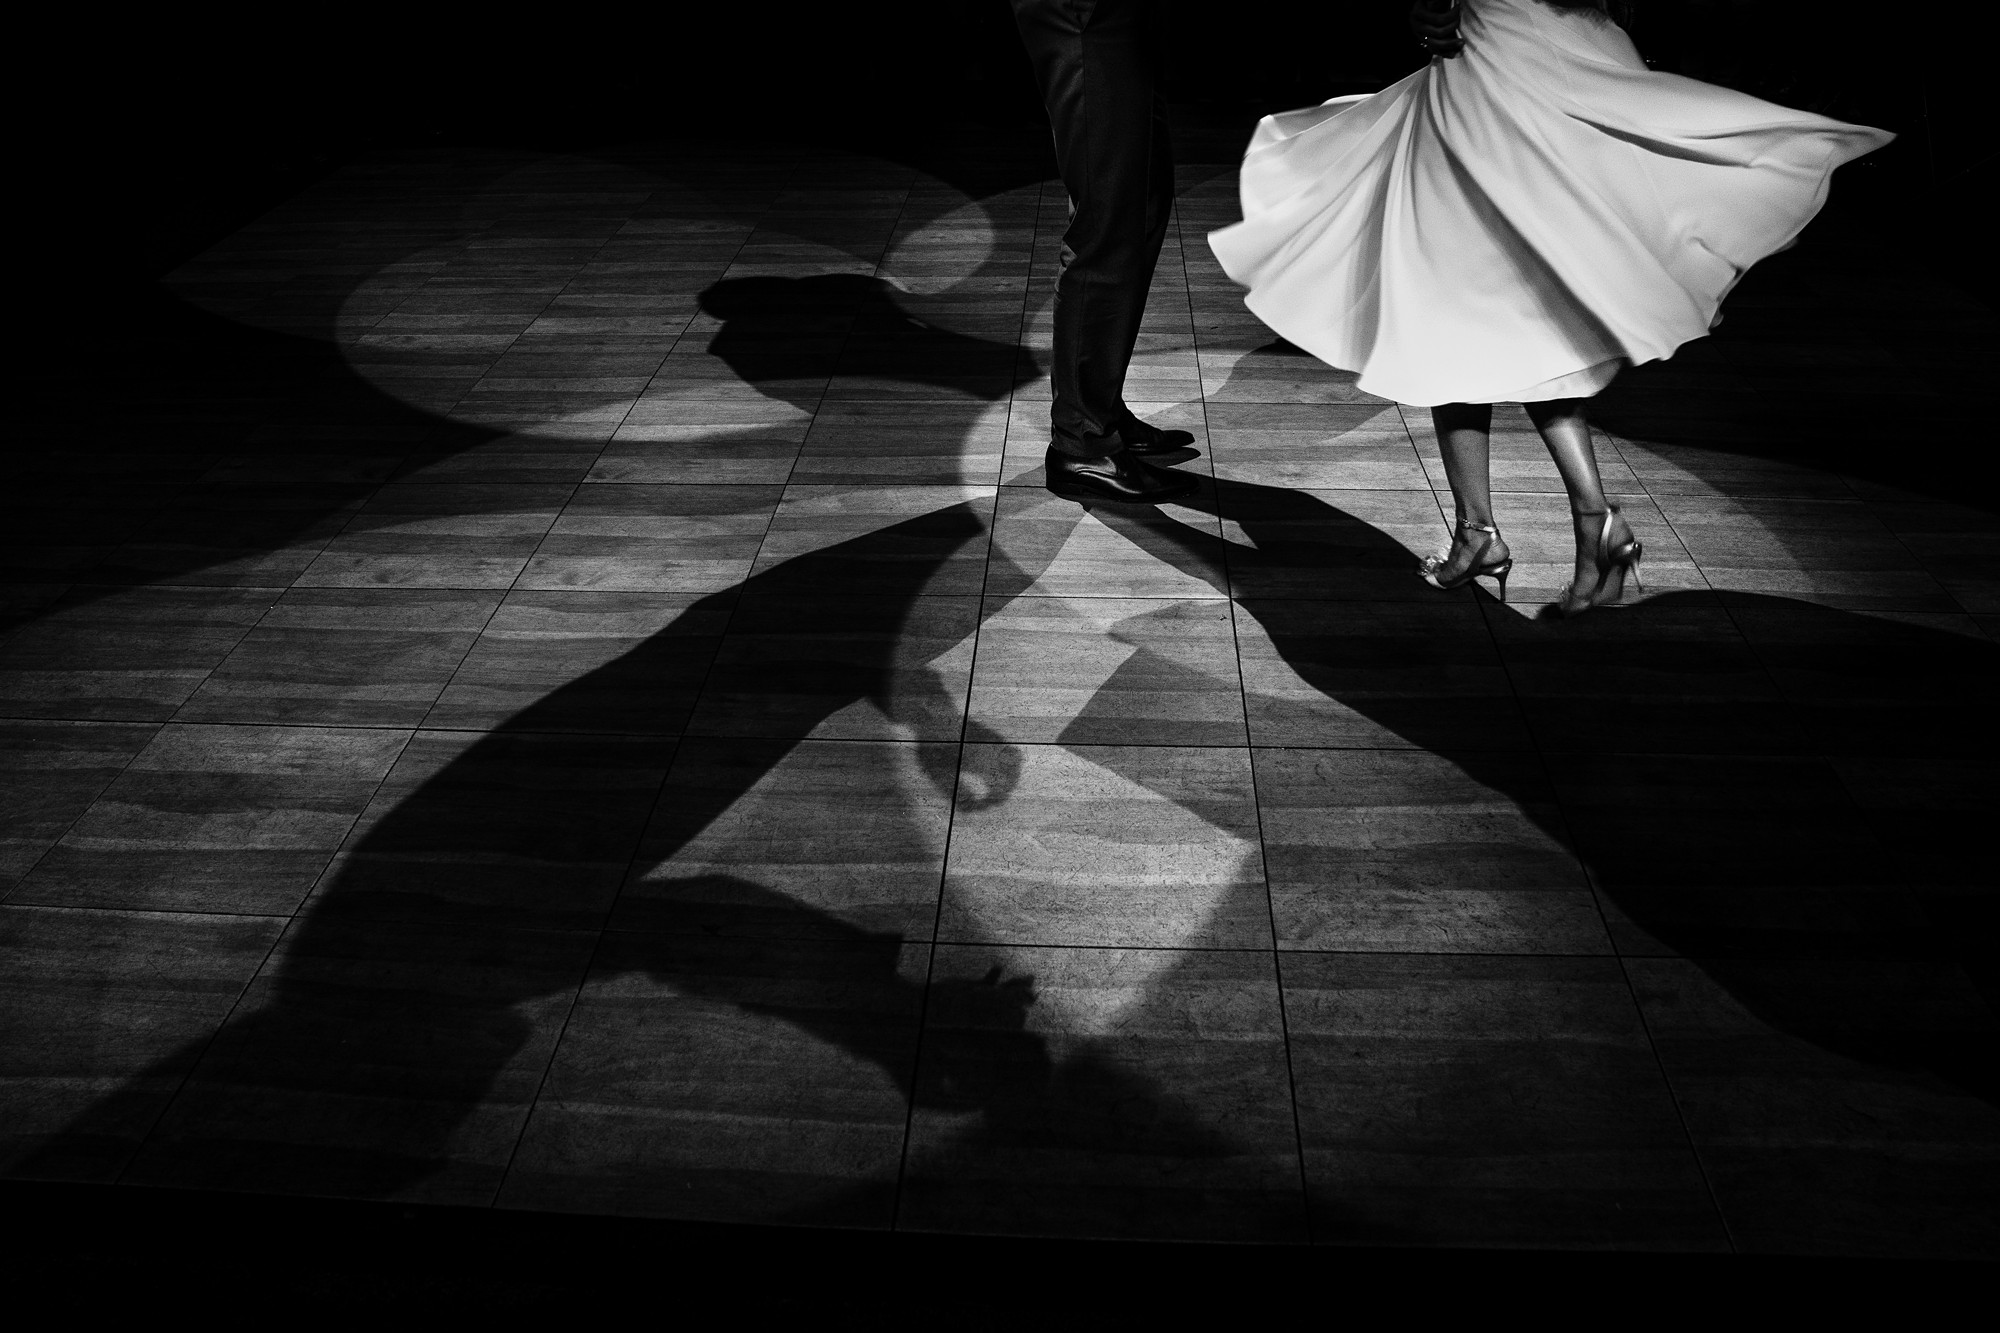 Shadows dancing - photo by Yves Schepers